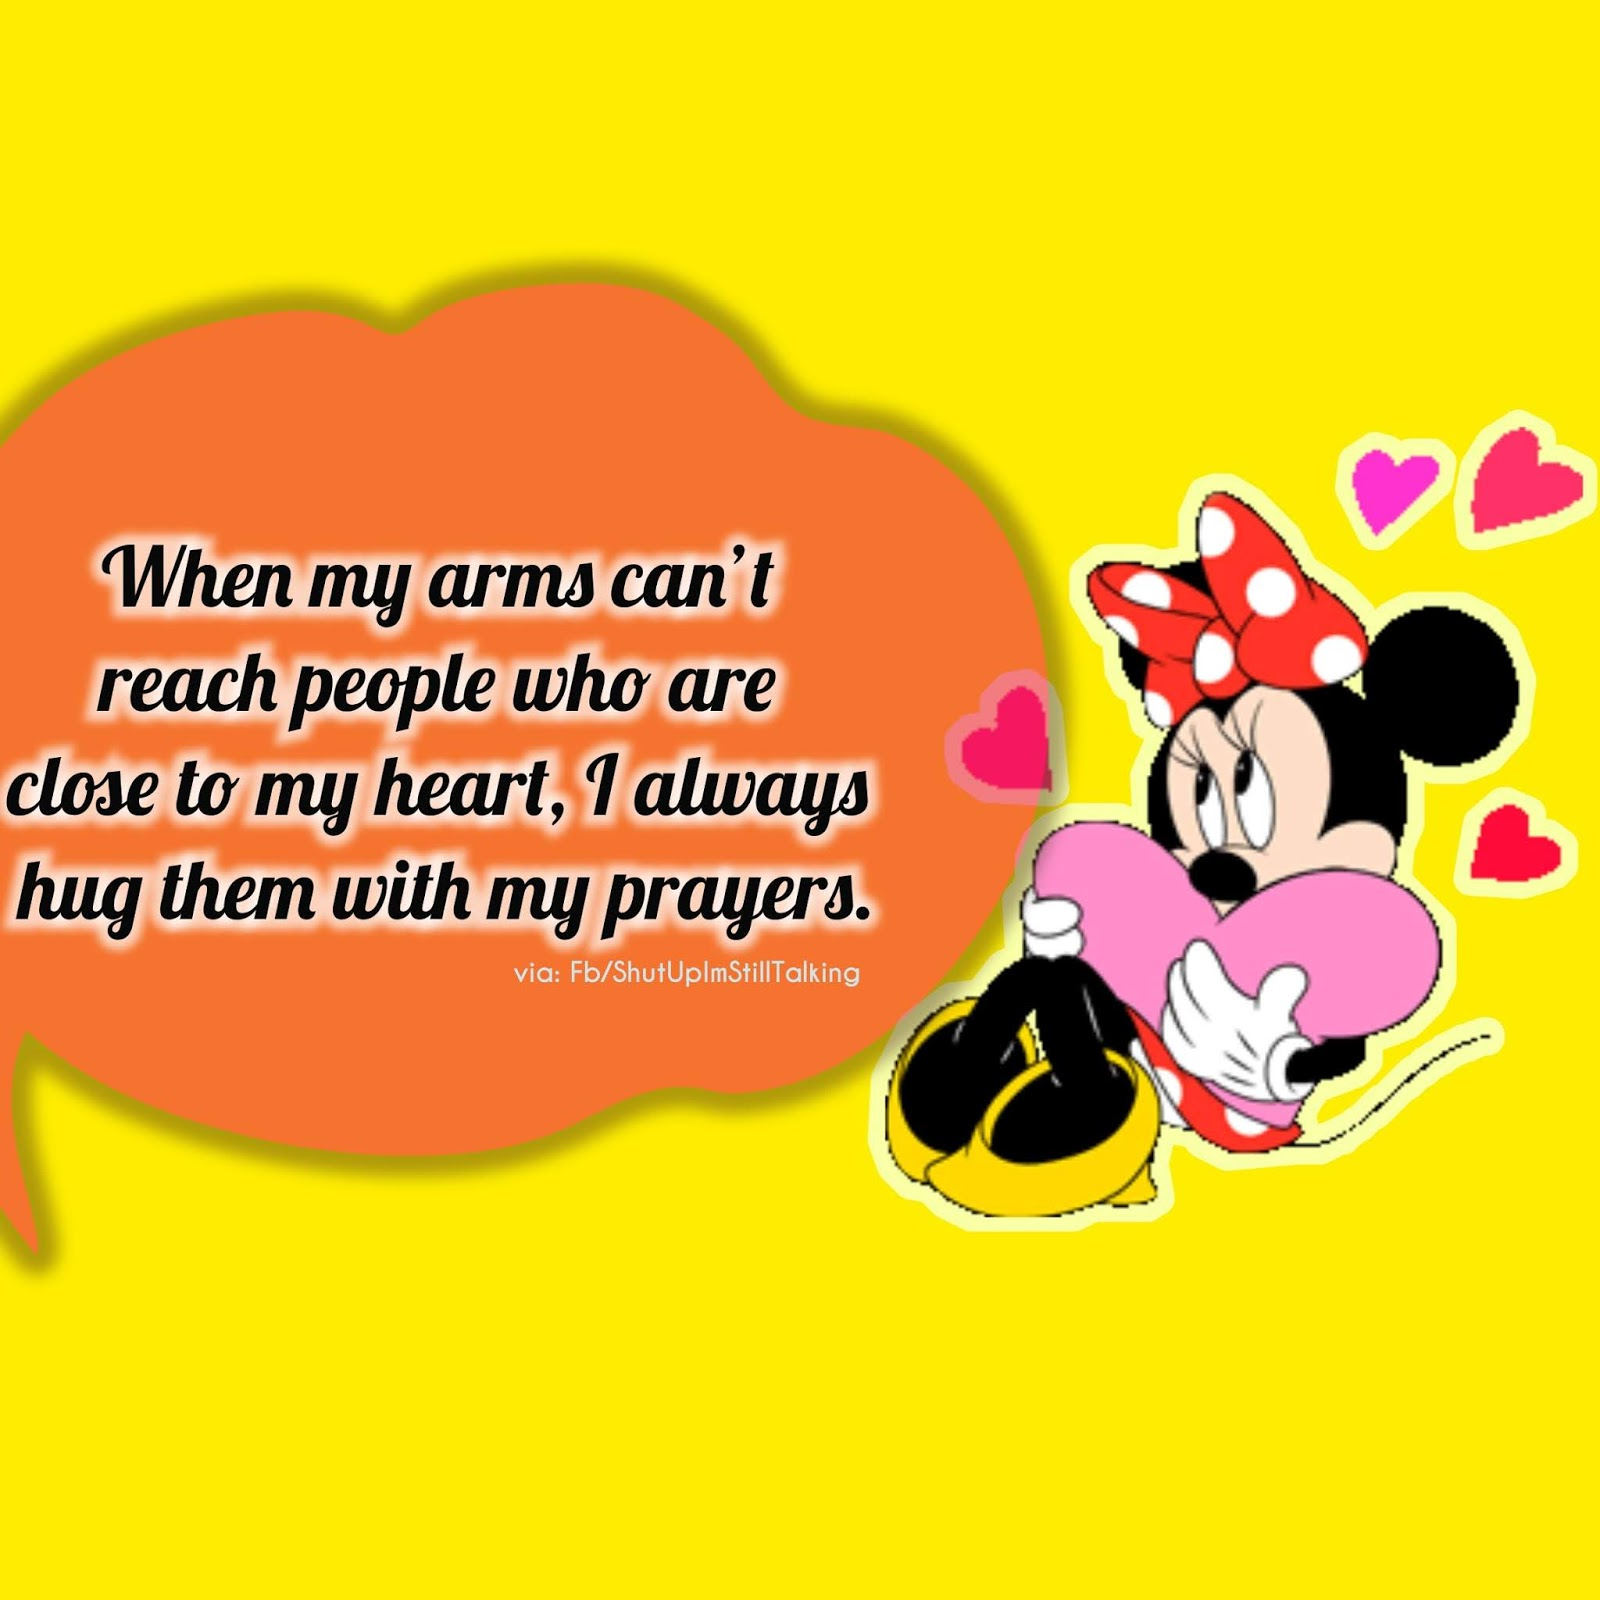 Clipart image of praying with all my heart image library stock The power of prayer image library stock